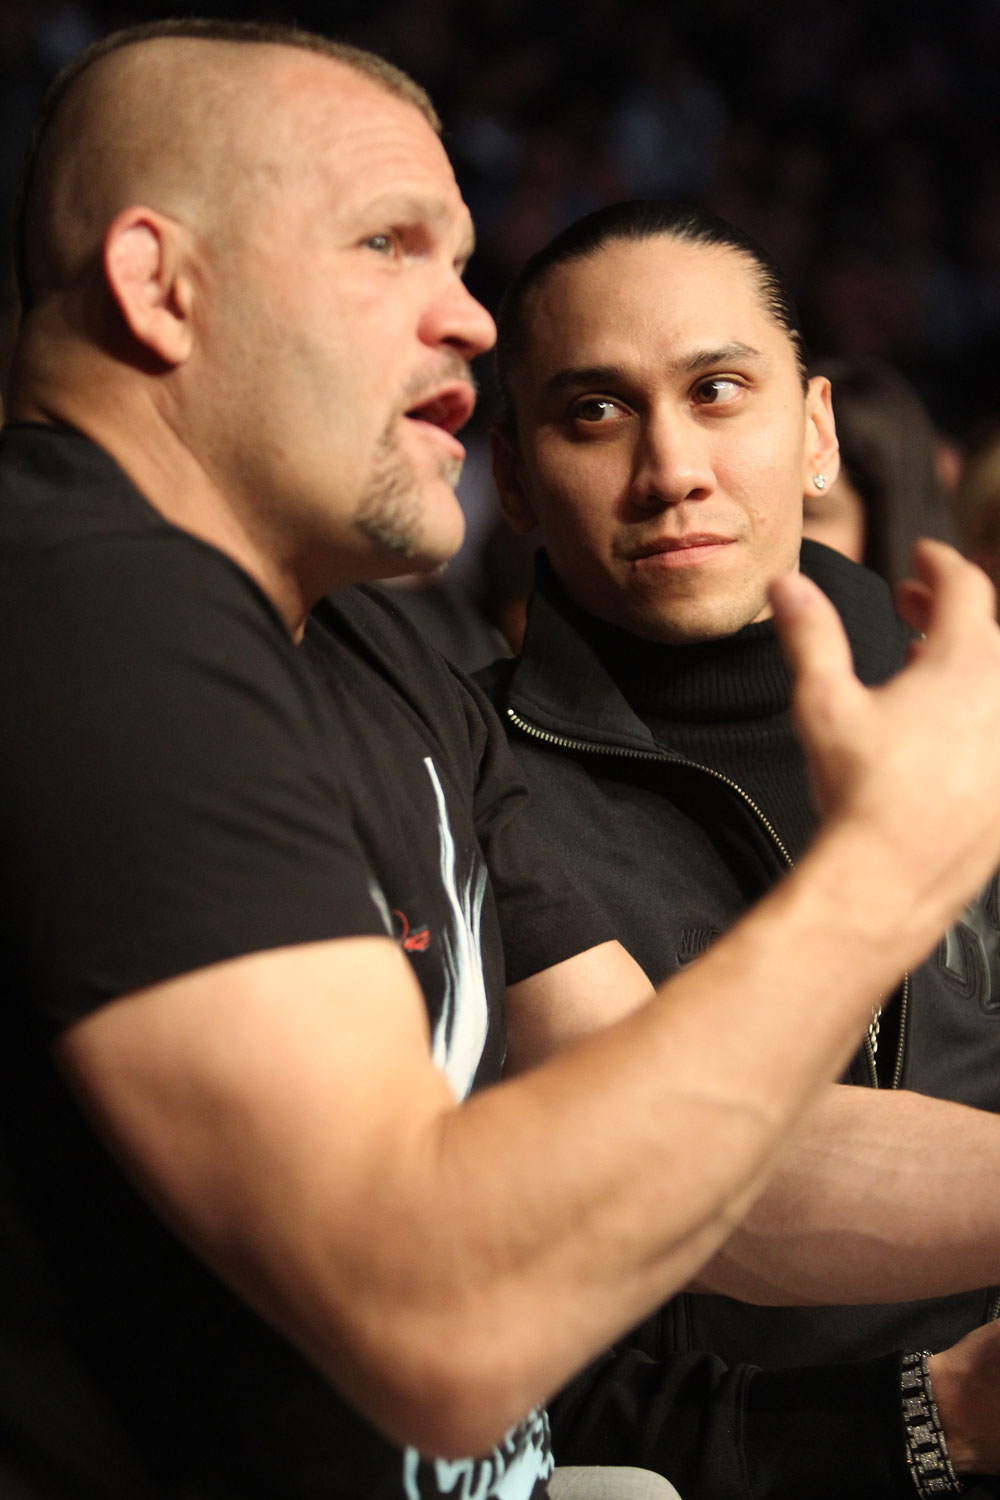 (L-R) UFC Hall of Famer Chuck Liddell and musician Taboo take in the fights at UFC 128 at the Prudential Center on March 19, 2011 in Newark, New Jersey.